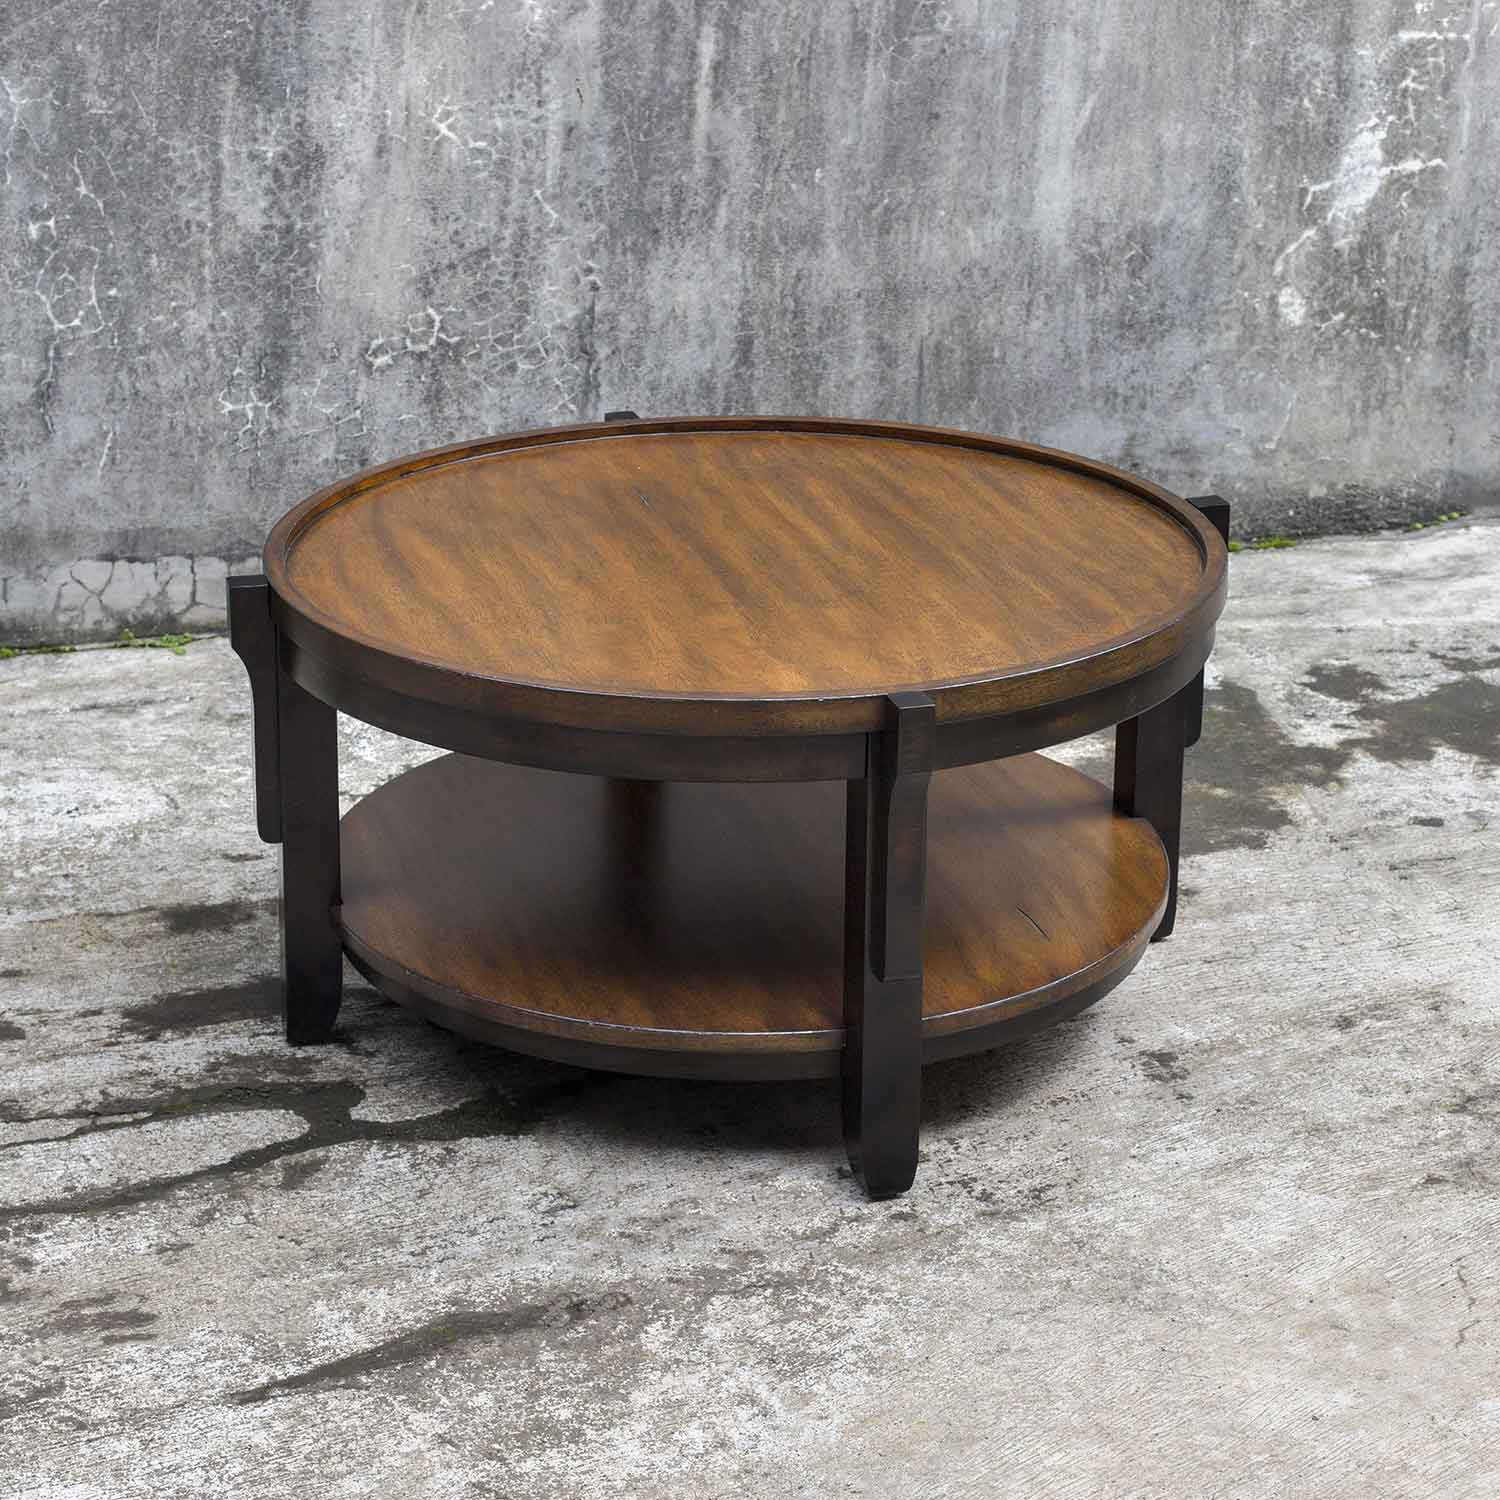 Uttermost sigmon round wooden coffee table uttermost 25819 at uttermost sigmon round wooden coffee table geotapseo Images